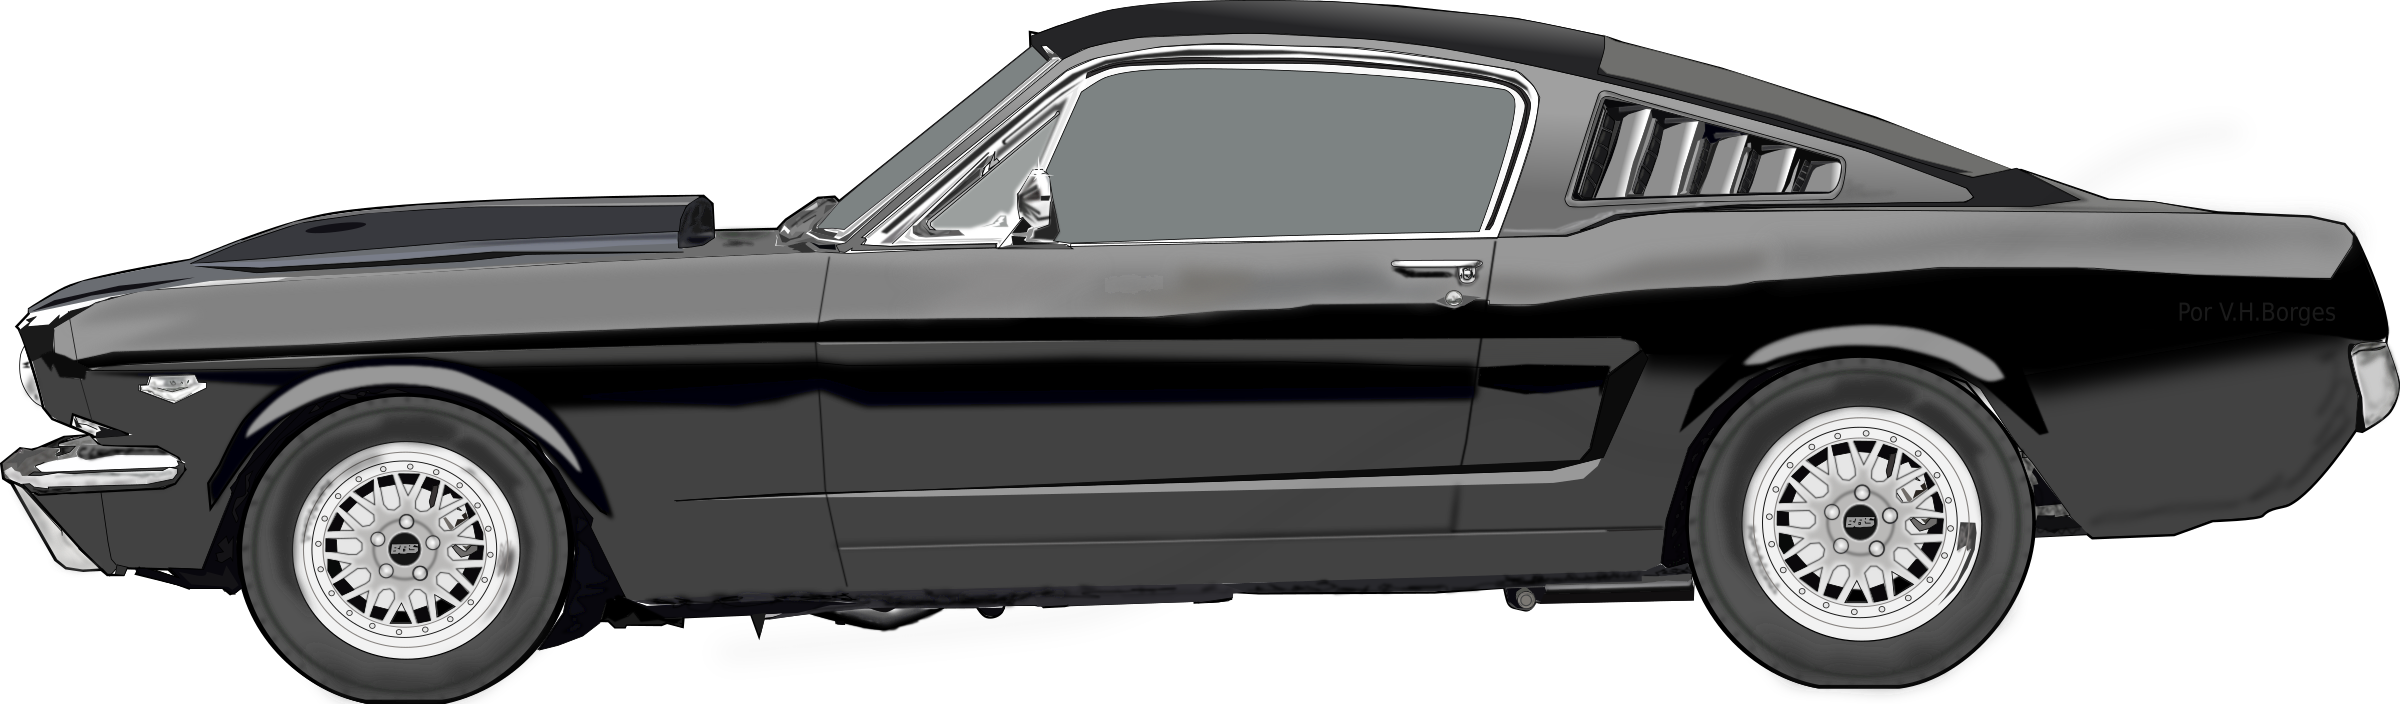 Muscle cars png file black and white. Clipart ford mustang big